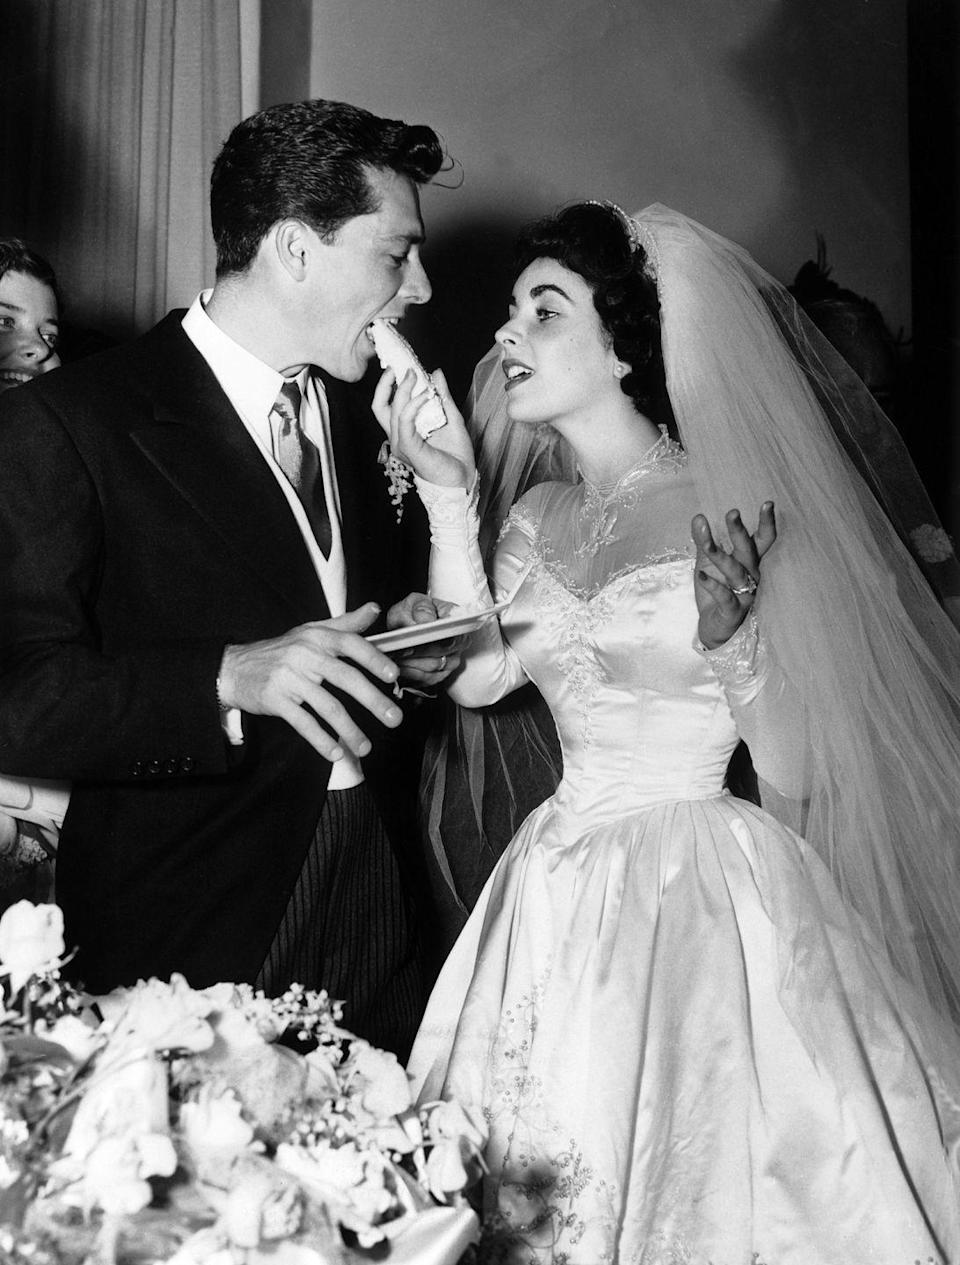 """<p>Actress Elizabeth Taylor <a href=""""https://www.distractify.com/p/celebrities-multiple-marriages"""" rel=""""nofollow noopener"""" target=""""_blank"""" data-ylk=""""slk:wed"""" class=""""link rapid-noclick-resp"""">wed</a> seven men in eight marriages. Her first marriage was to hotel heir Conrad Hilton, Jr., followed by actor Michael Wilding, theater producer Mike Todd, singer Eddie Fisher, actor Richard Burton (who she married twice), politician John Warner and construction worker Larry Fortensky.</p>"""